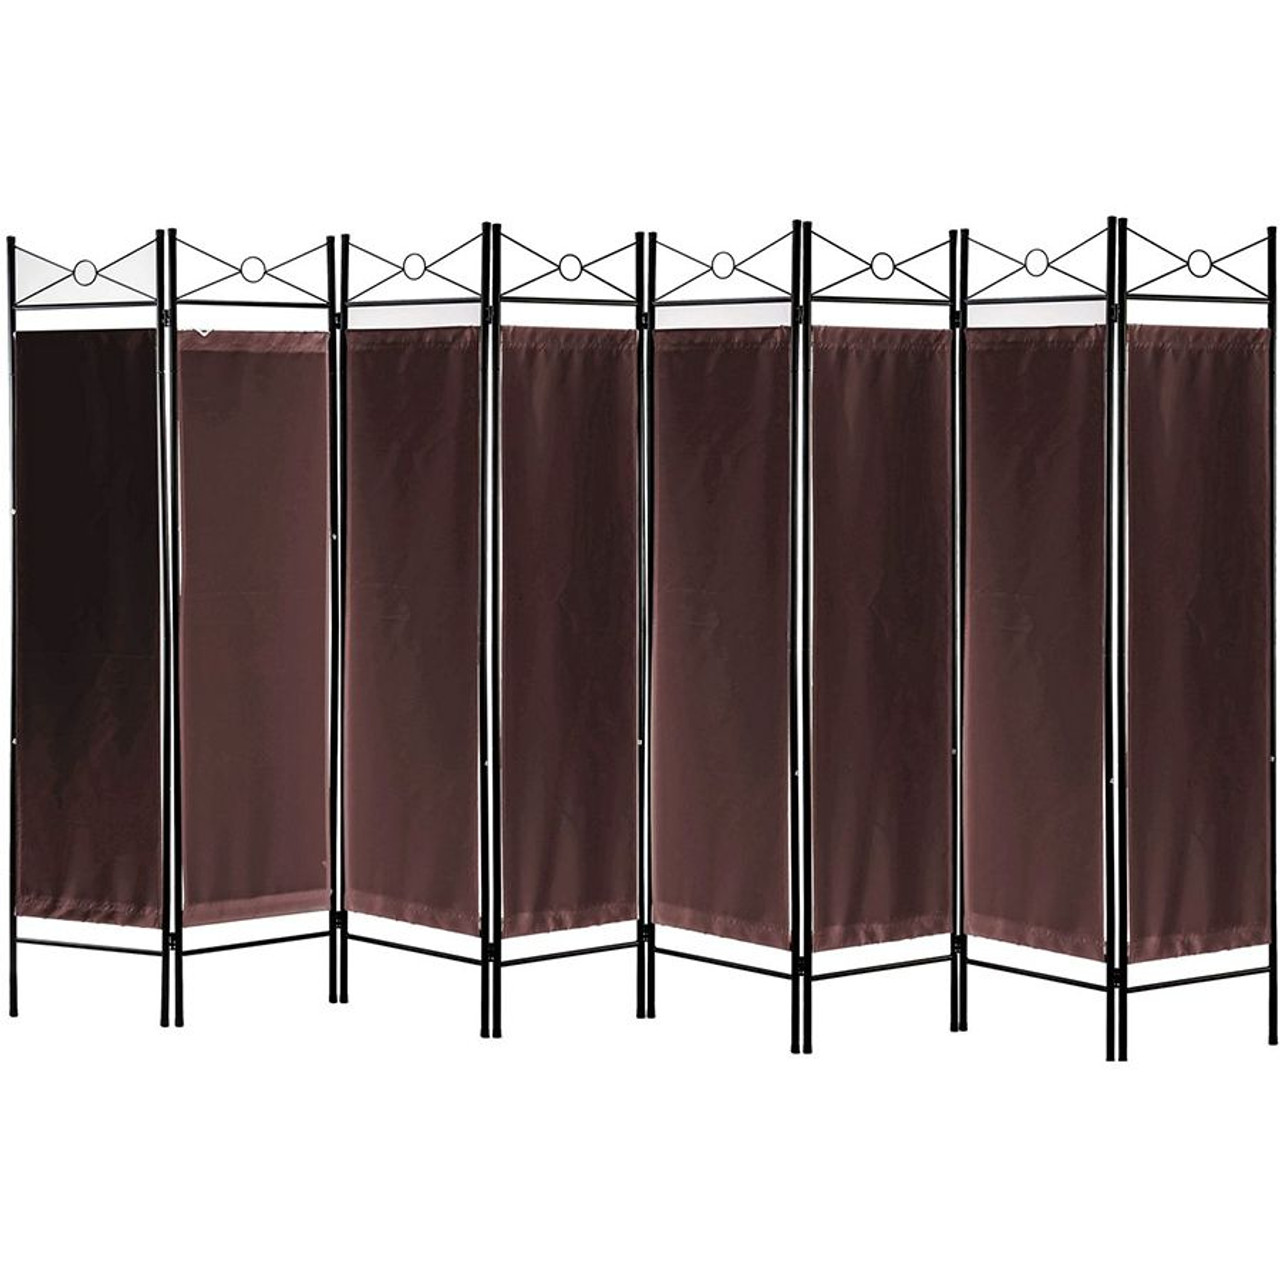 Metal Room Divider Privacy Screen with Removable Fabric  Brown Color